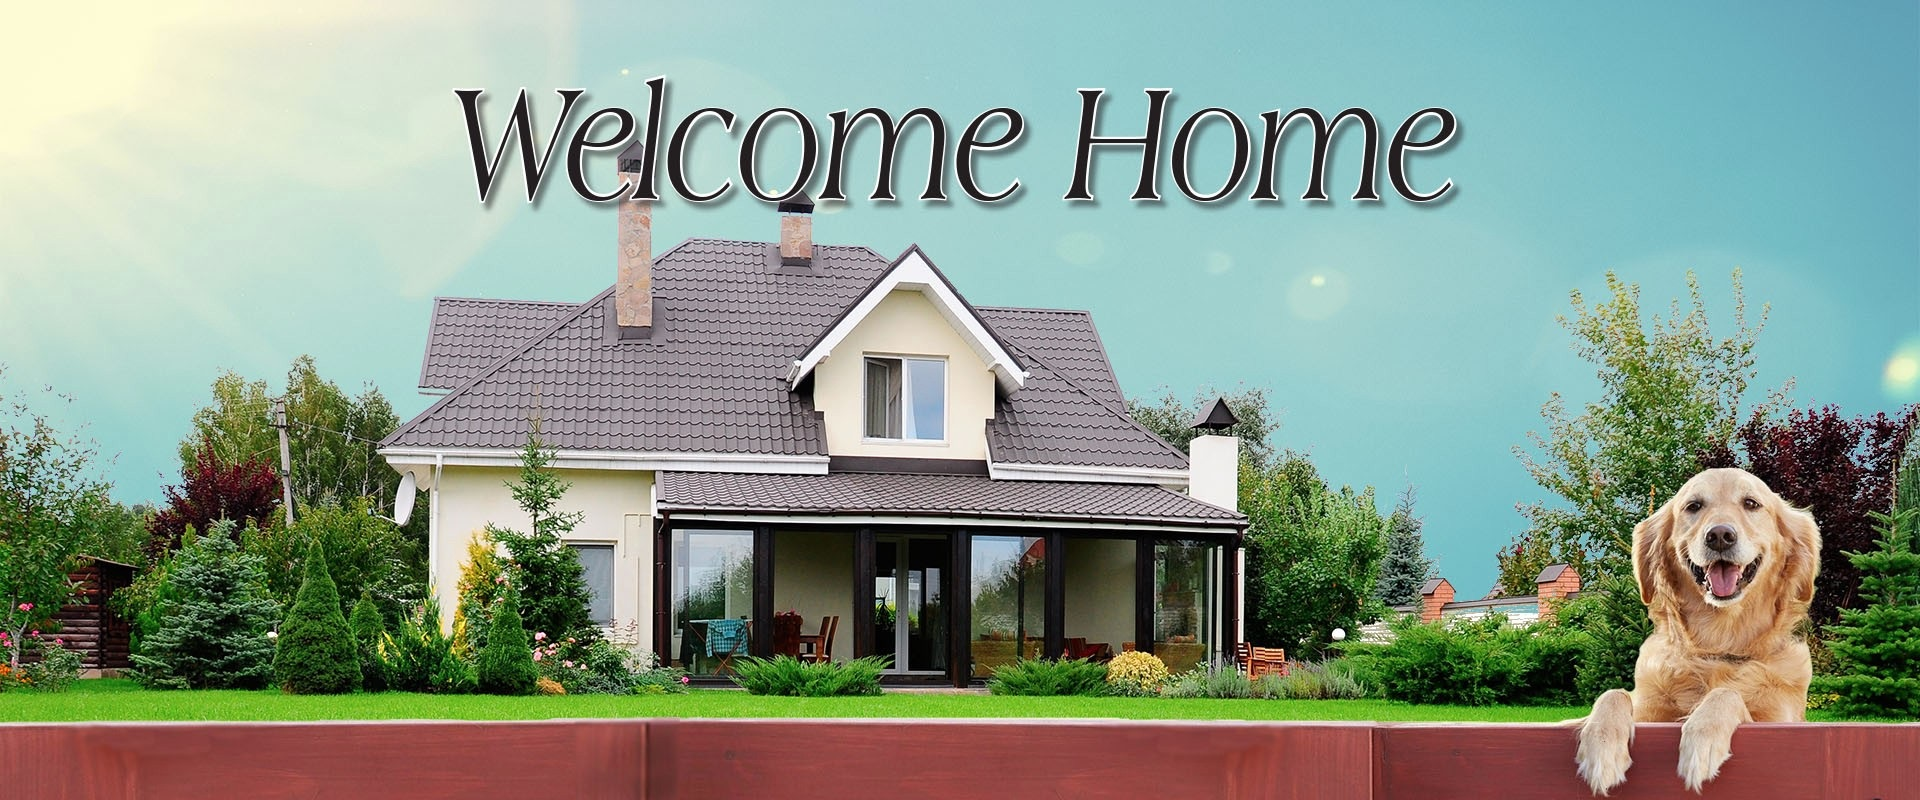 welcome-home-banner2